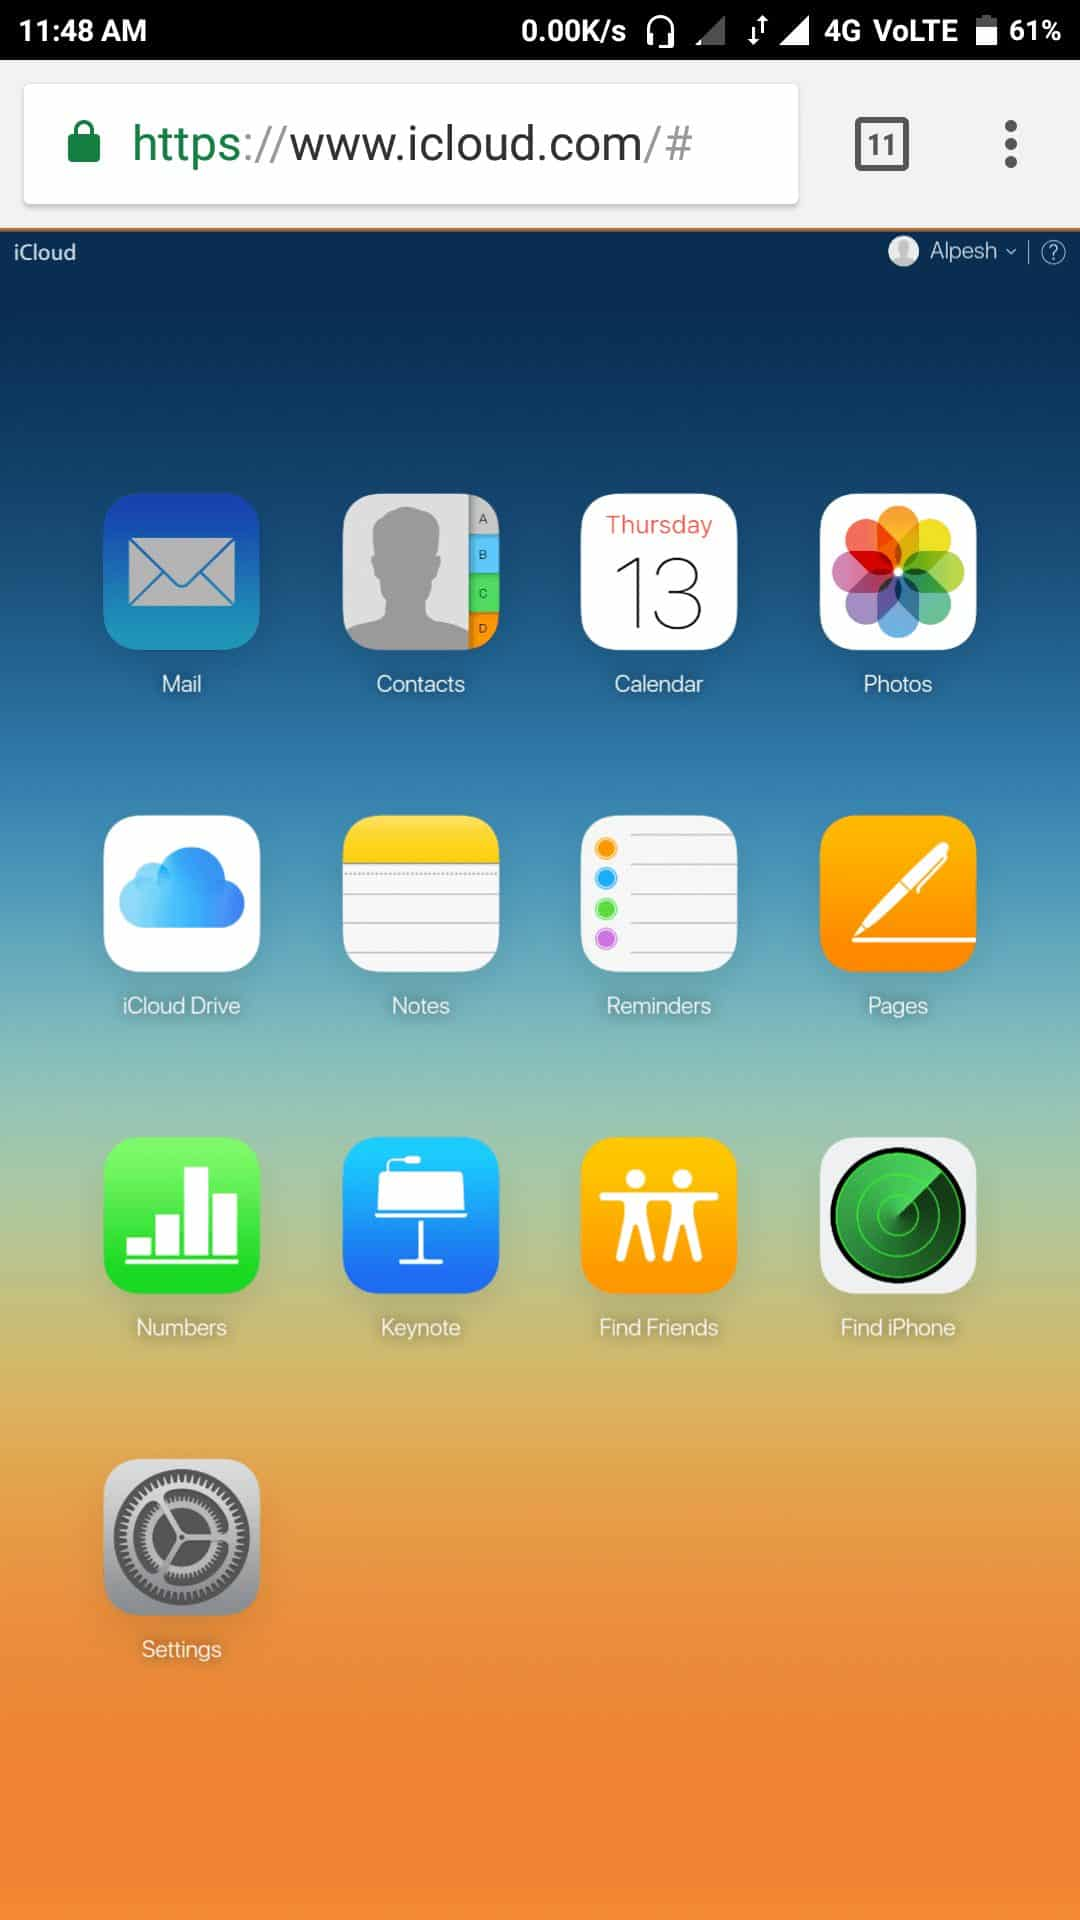 Get iCloud Photos on Android - Transfer iCloud Photos on Android